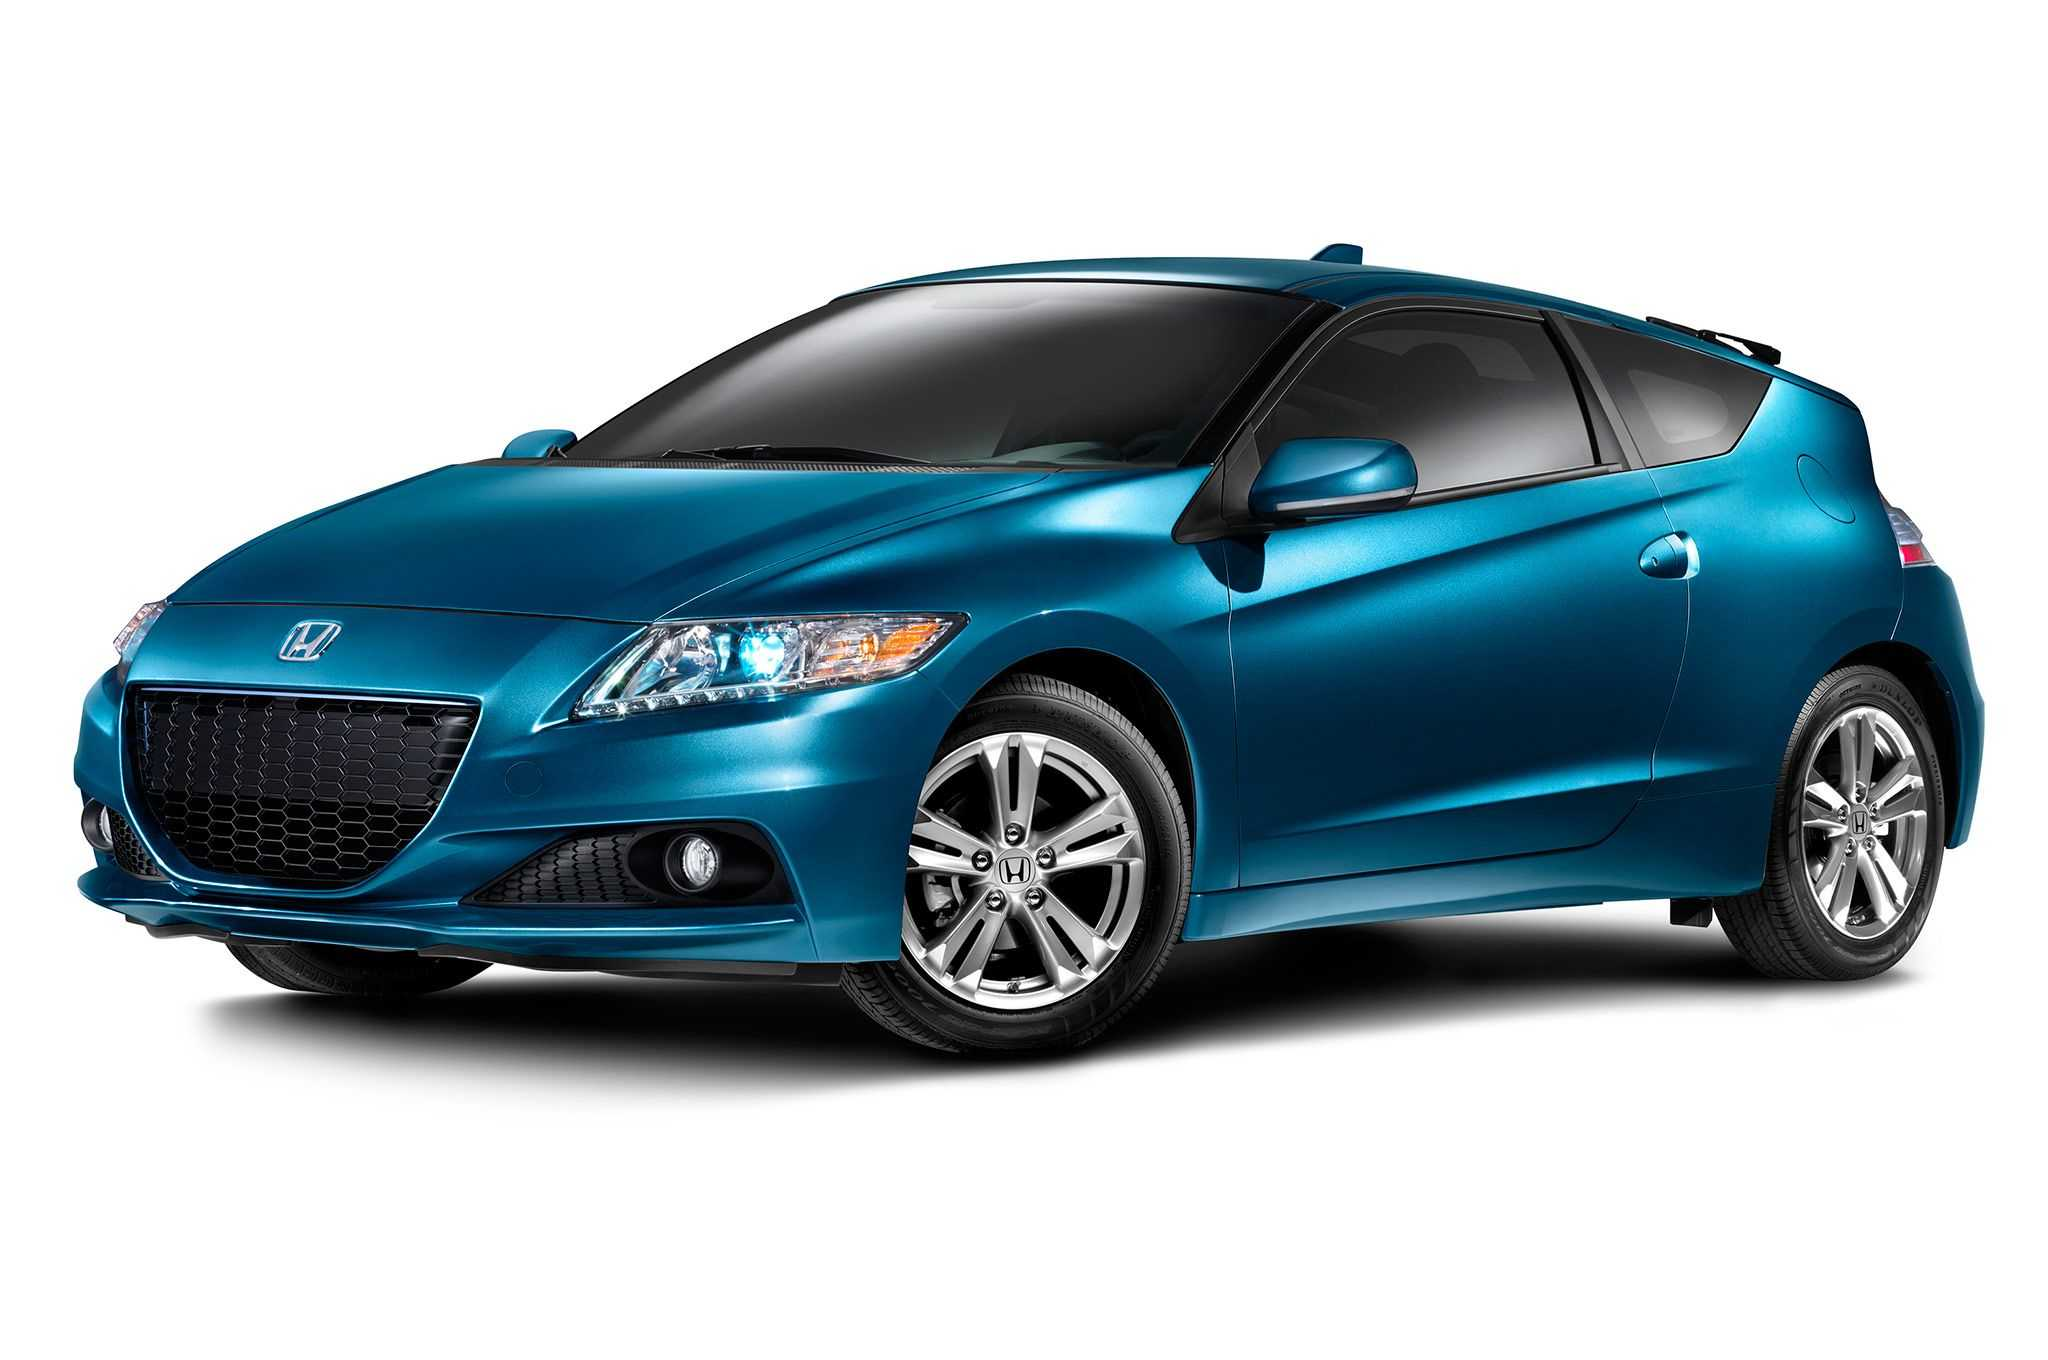 64 All New 2019 Honda Cr Z Price And Review